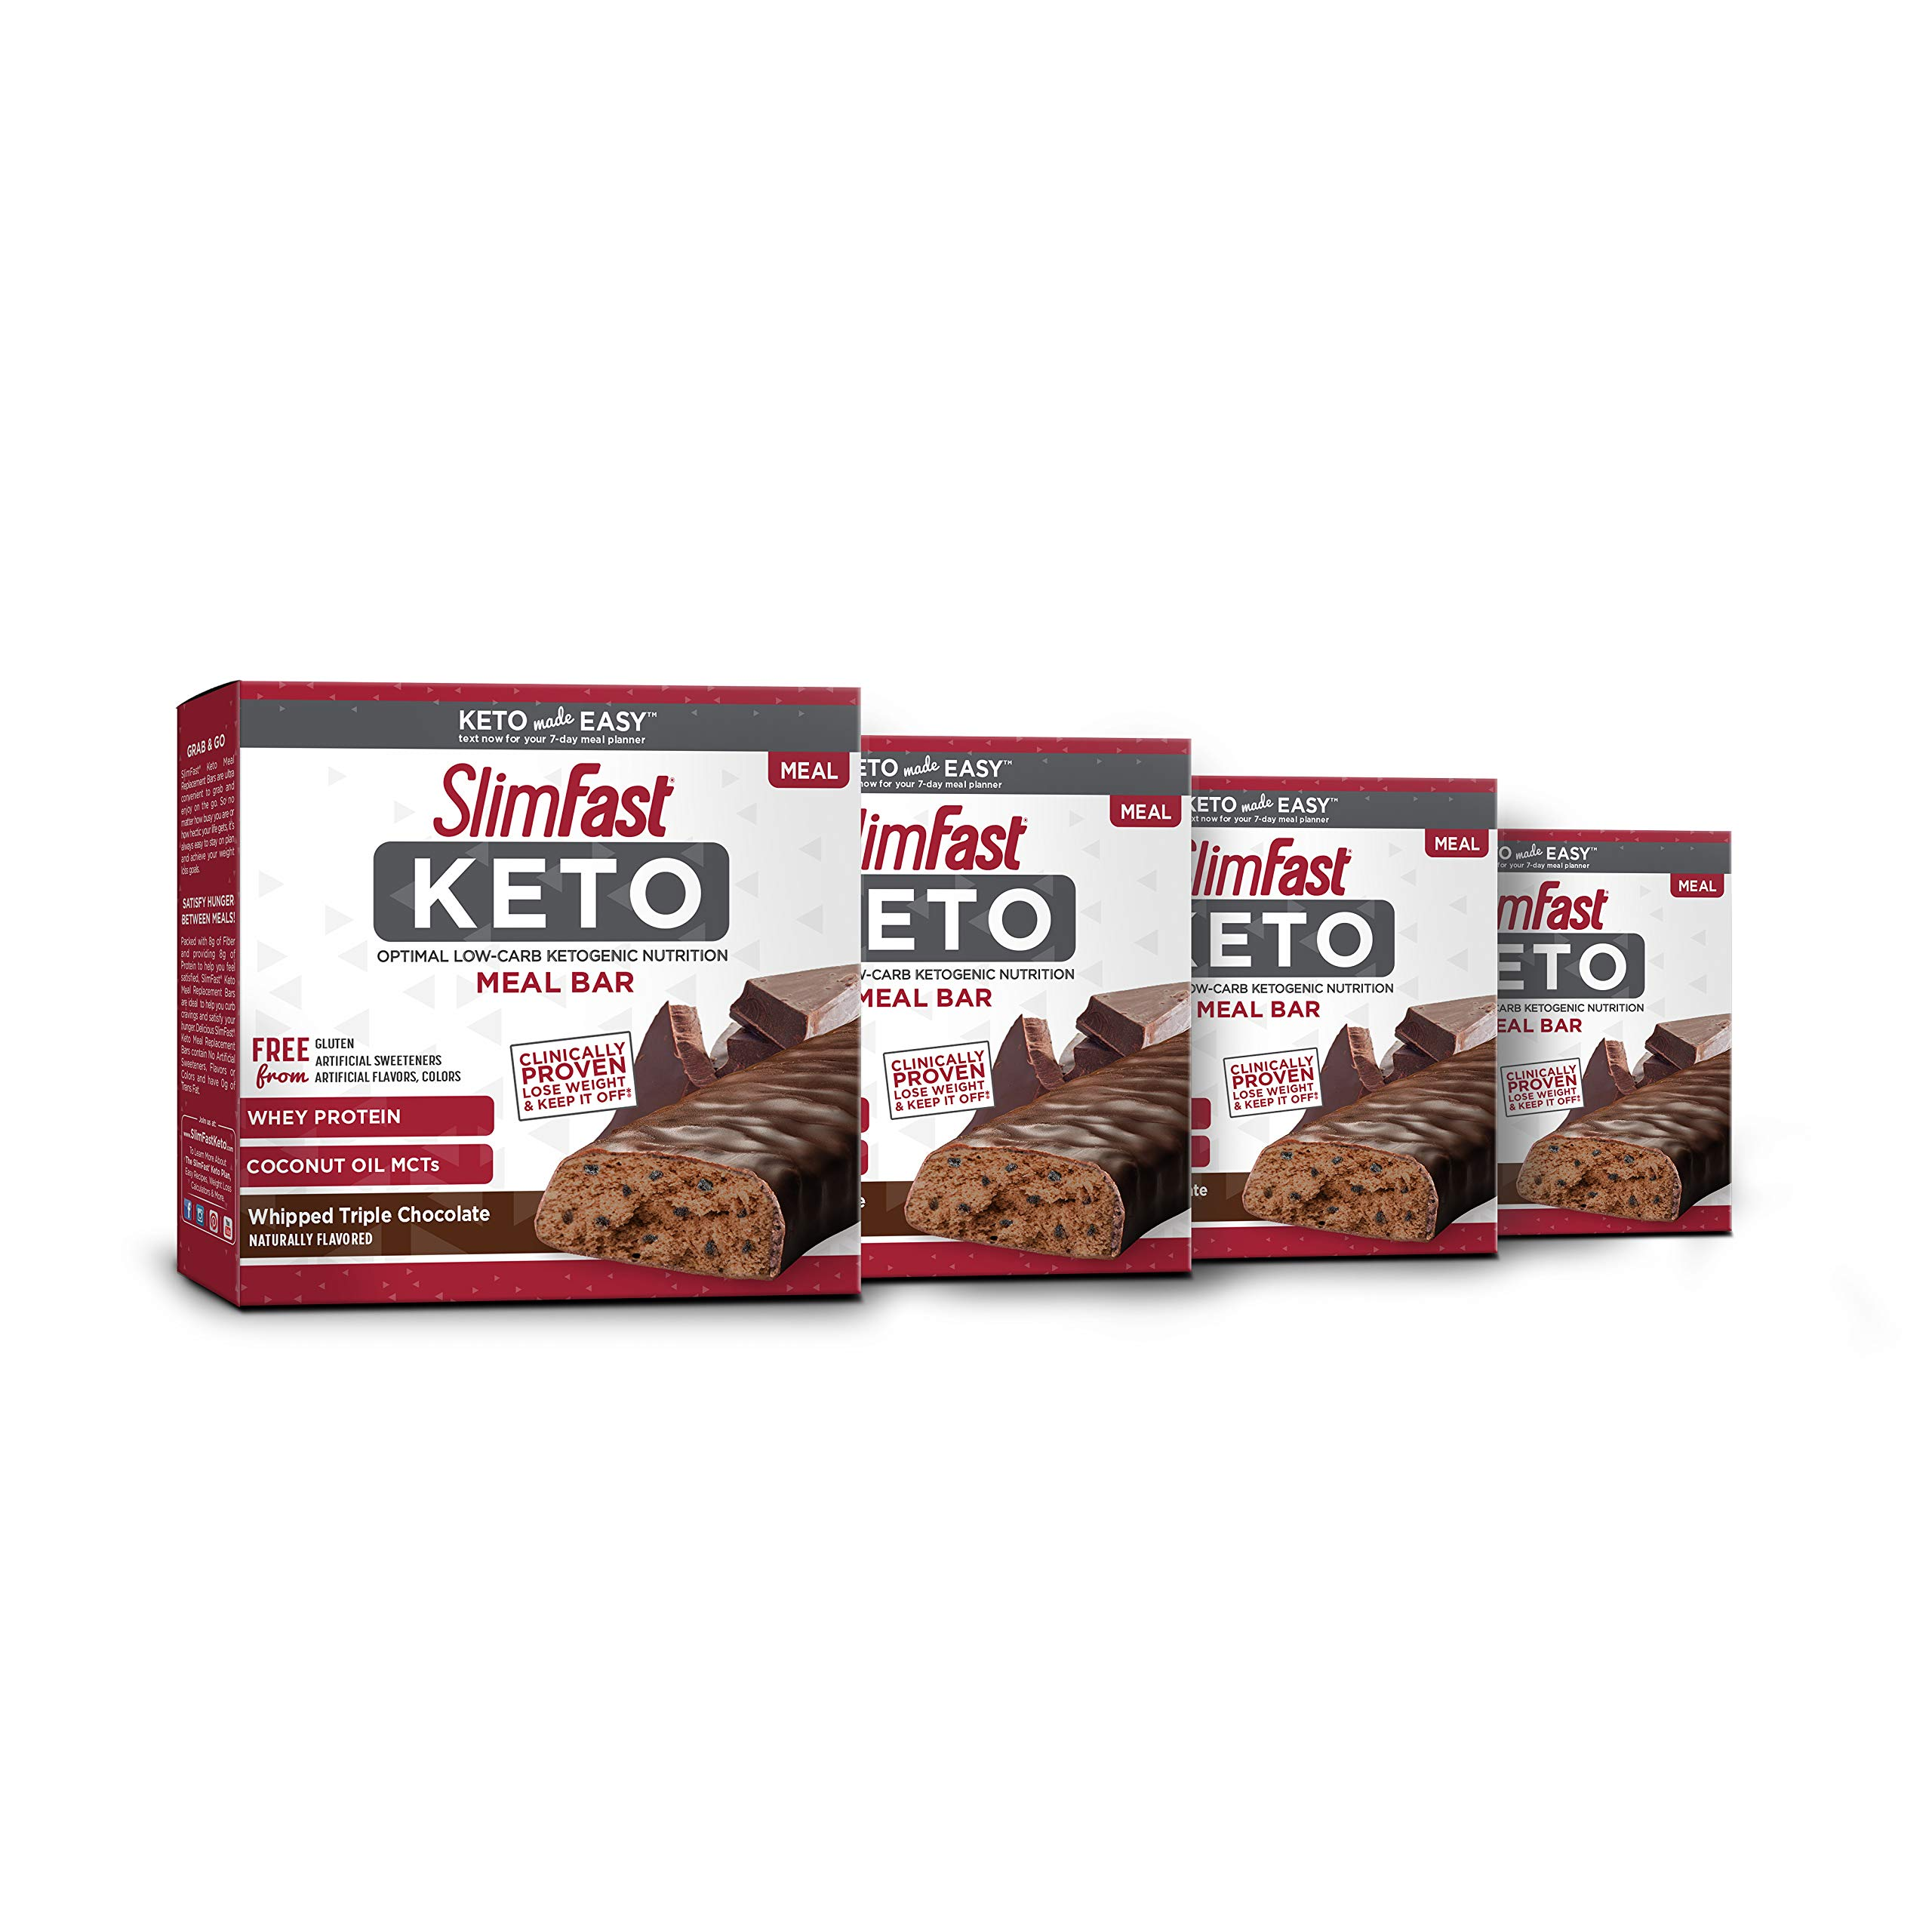 SlimFast 4 Piece Keto Meal Replacement Bar Triple Chocolate, 2.7 Pound by SlimFast (Image #1)